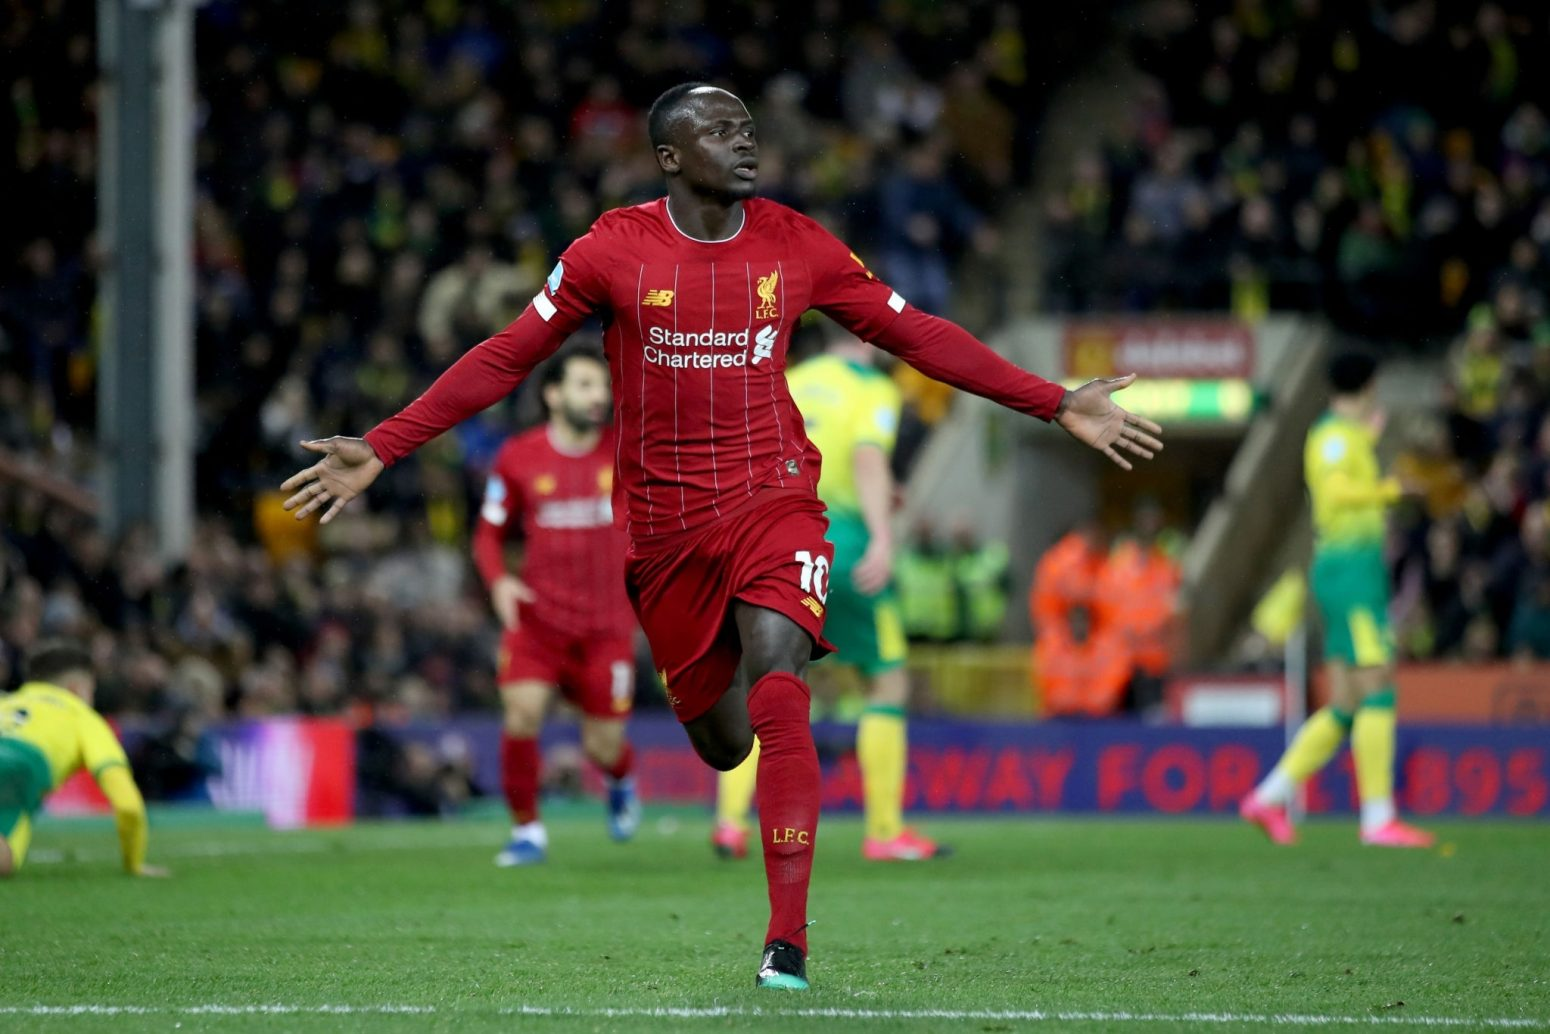 The best photos as super-sub Mane gives Liverpool 1-0 win over Norwich